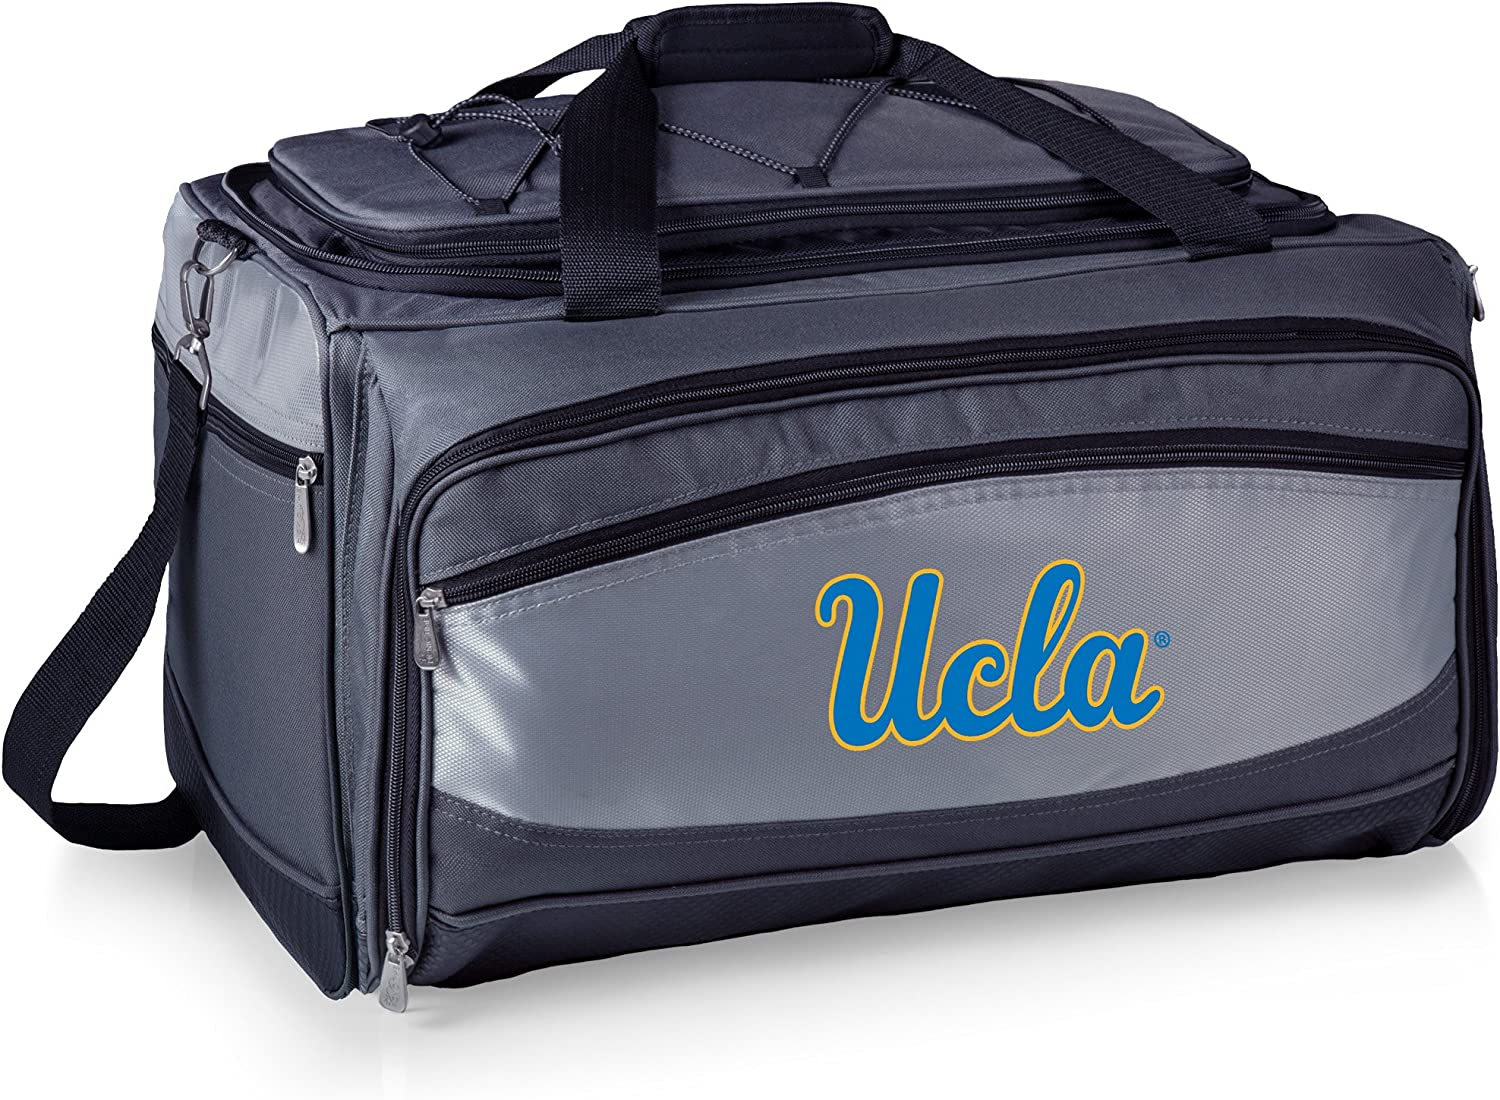 NCAA UCLA Bruins Buccaneer Tailgating Cooler with Grill